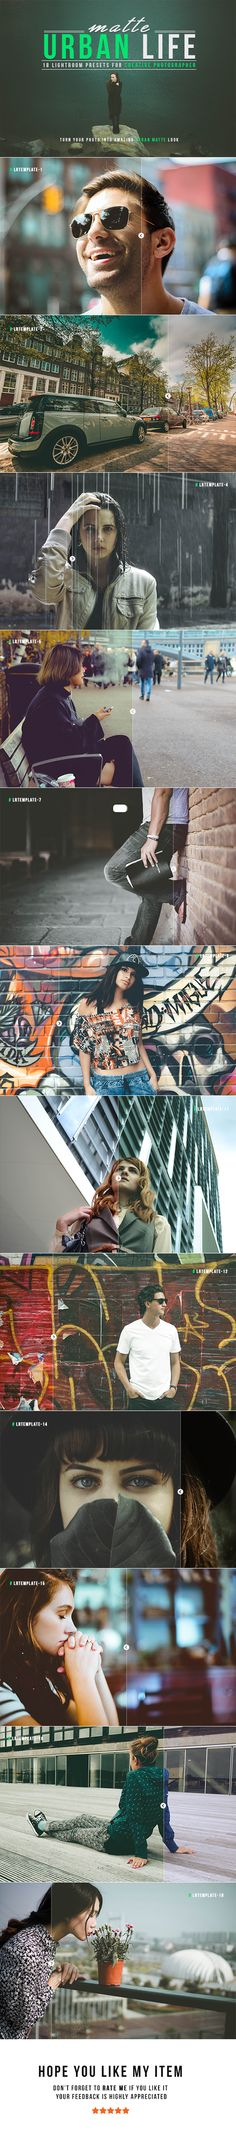 Matte Urban Life Lightroom Presets - Lightroom Presets Add-ons